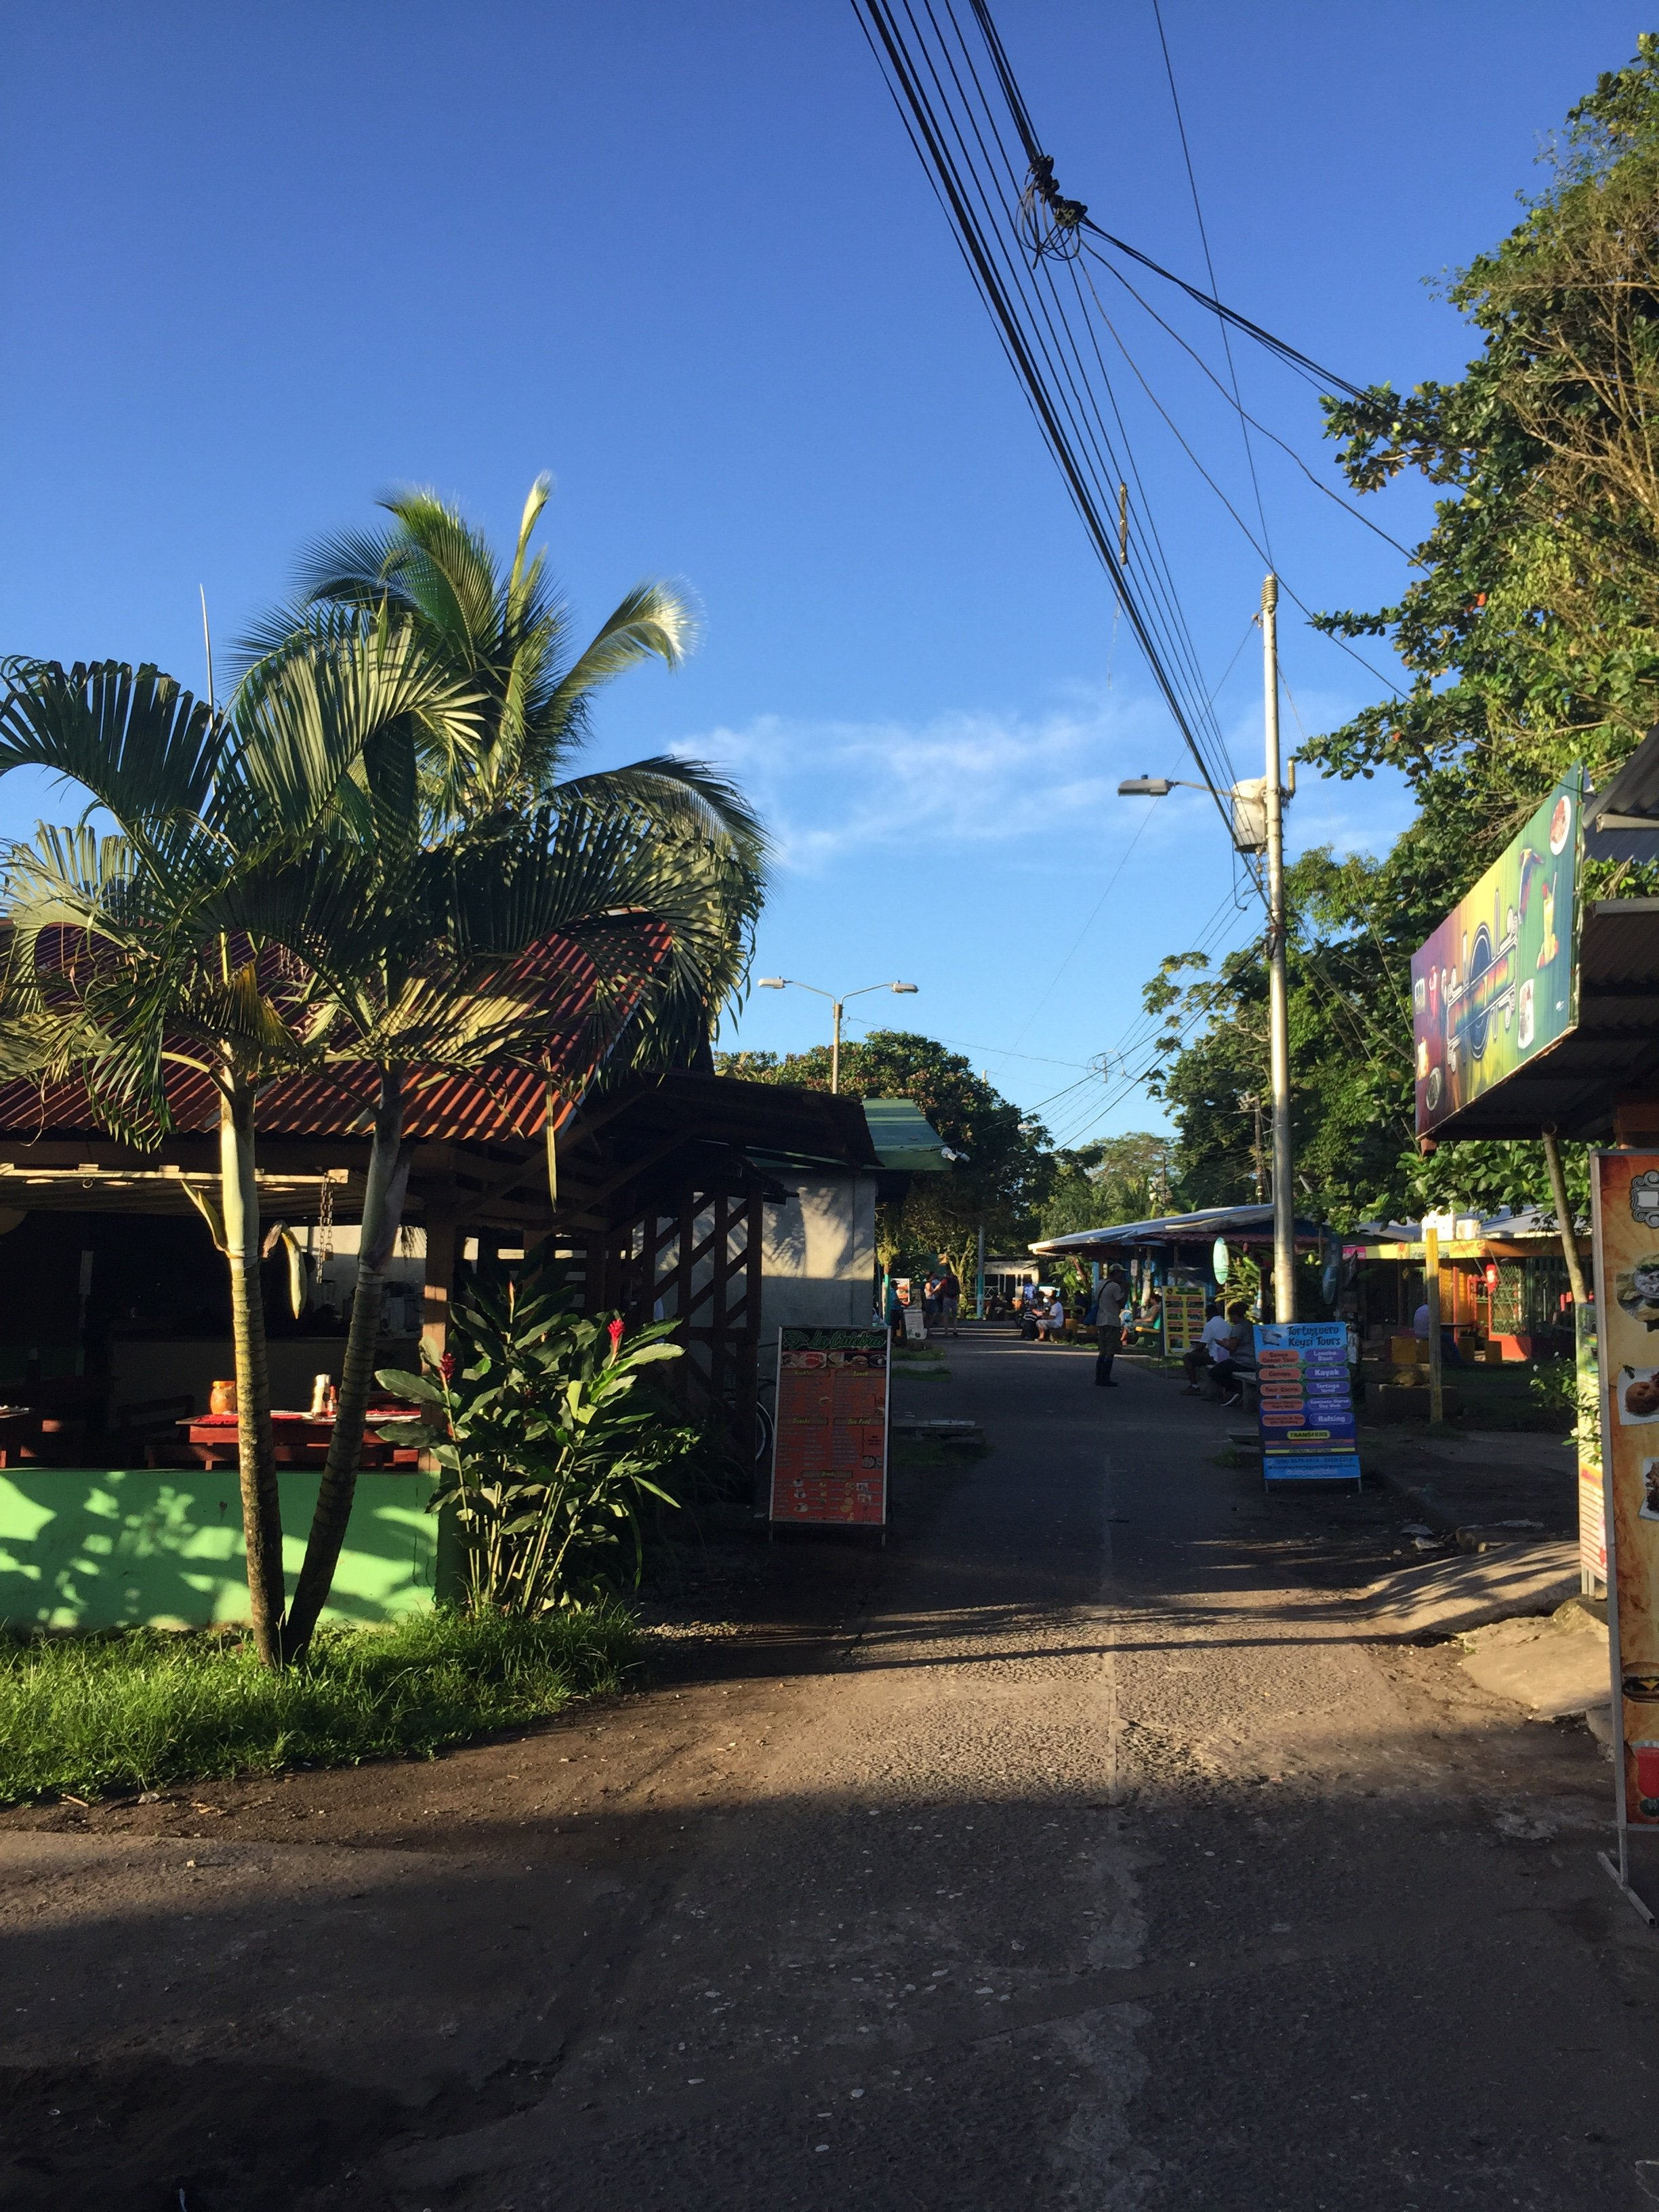 The village of Tortuguero